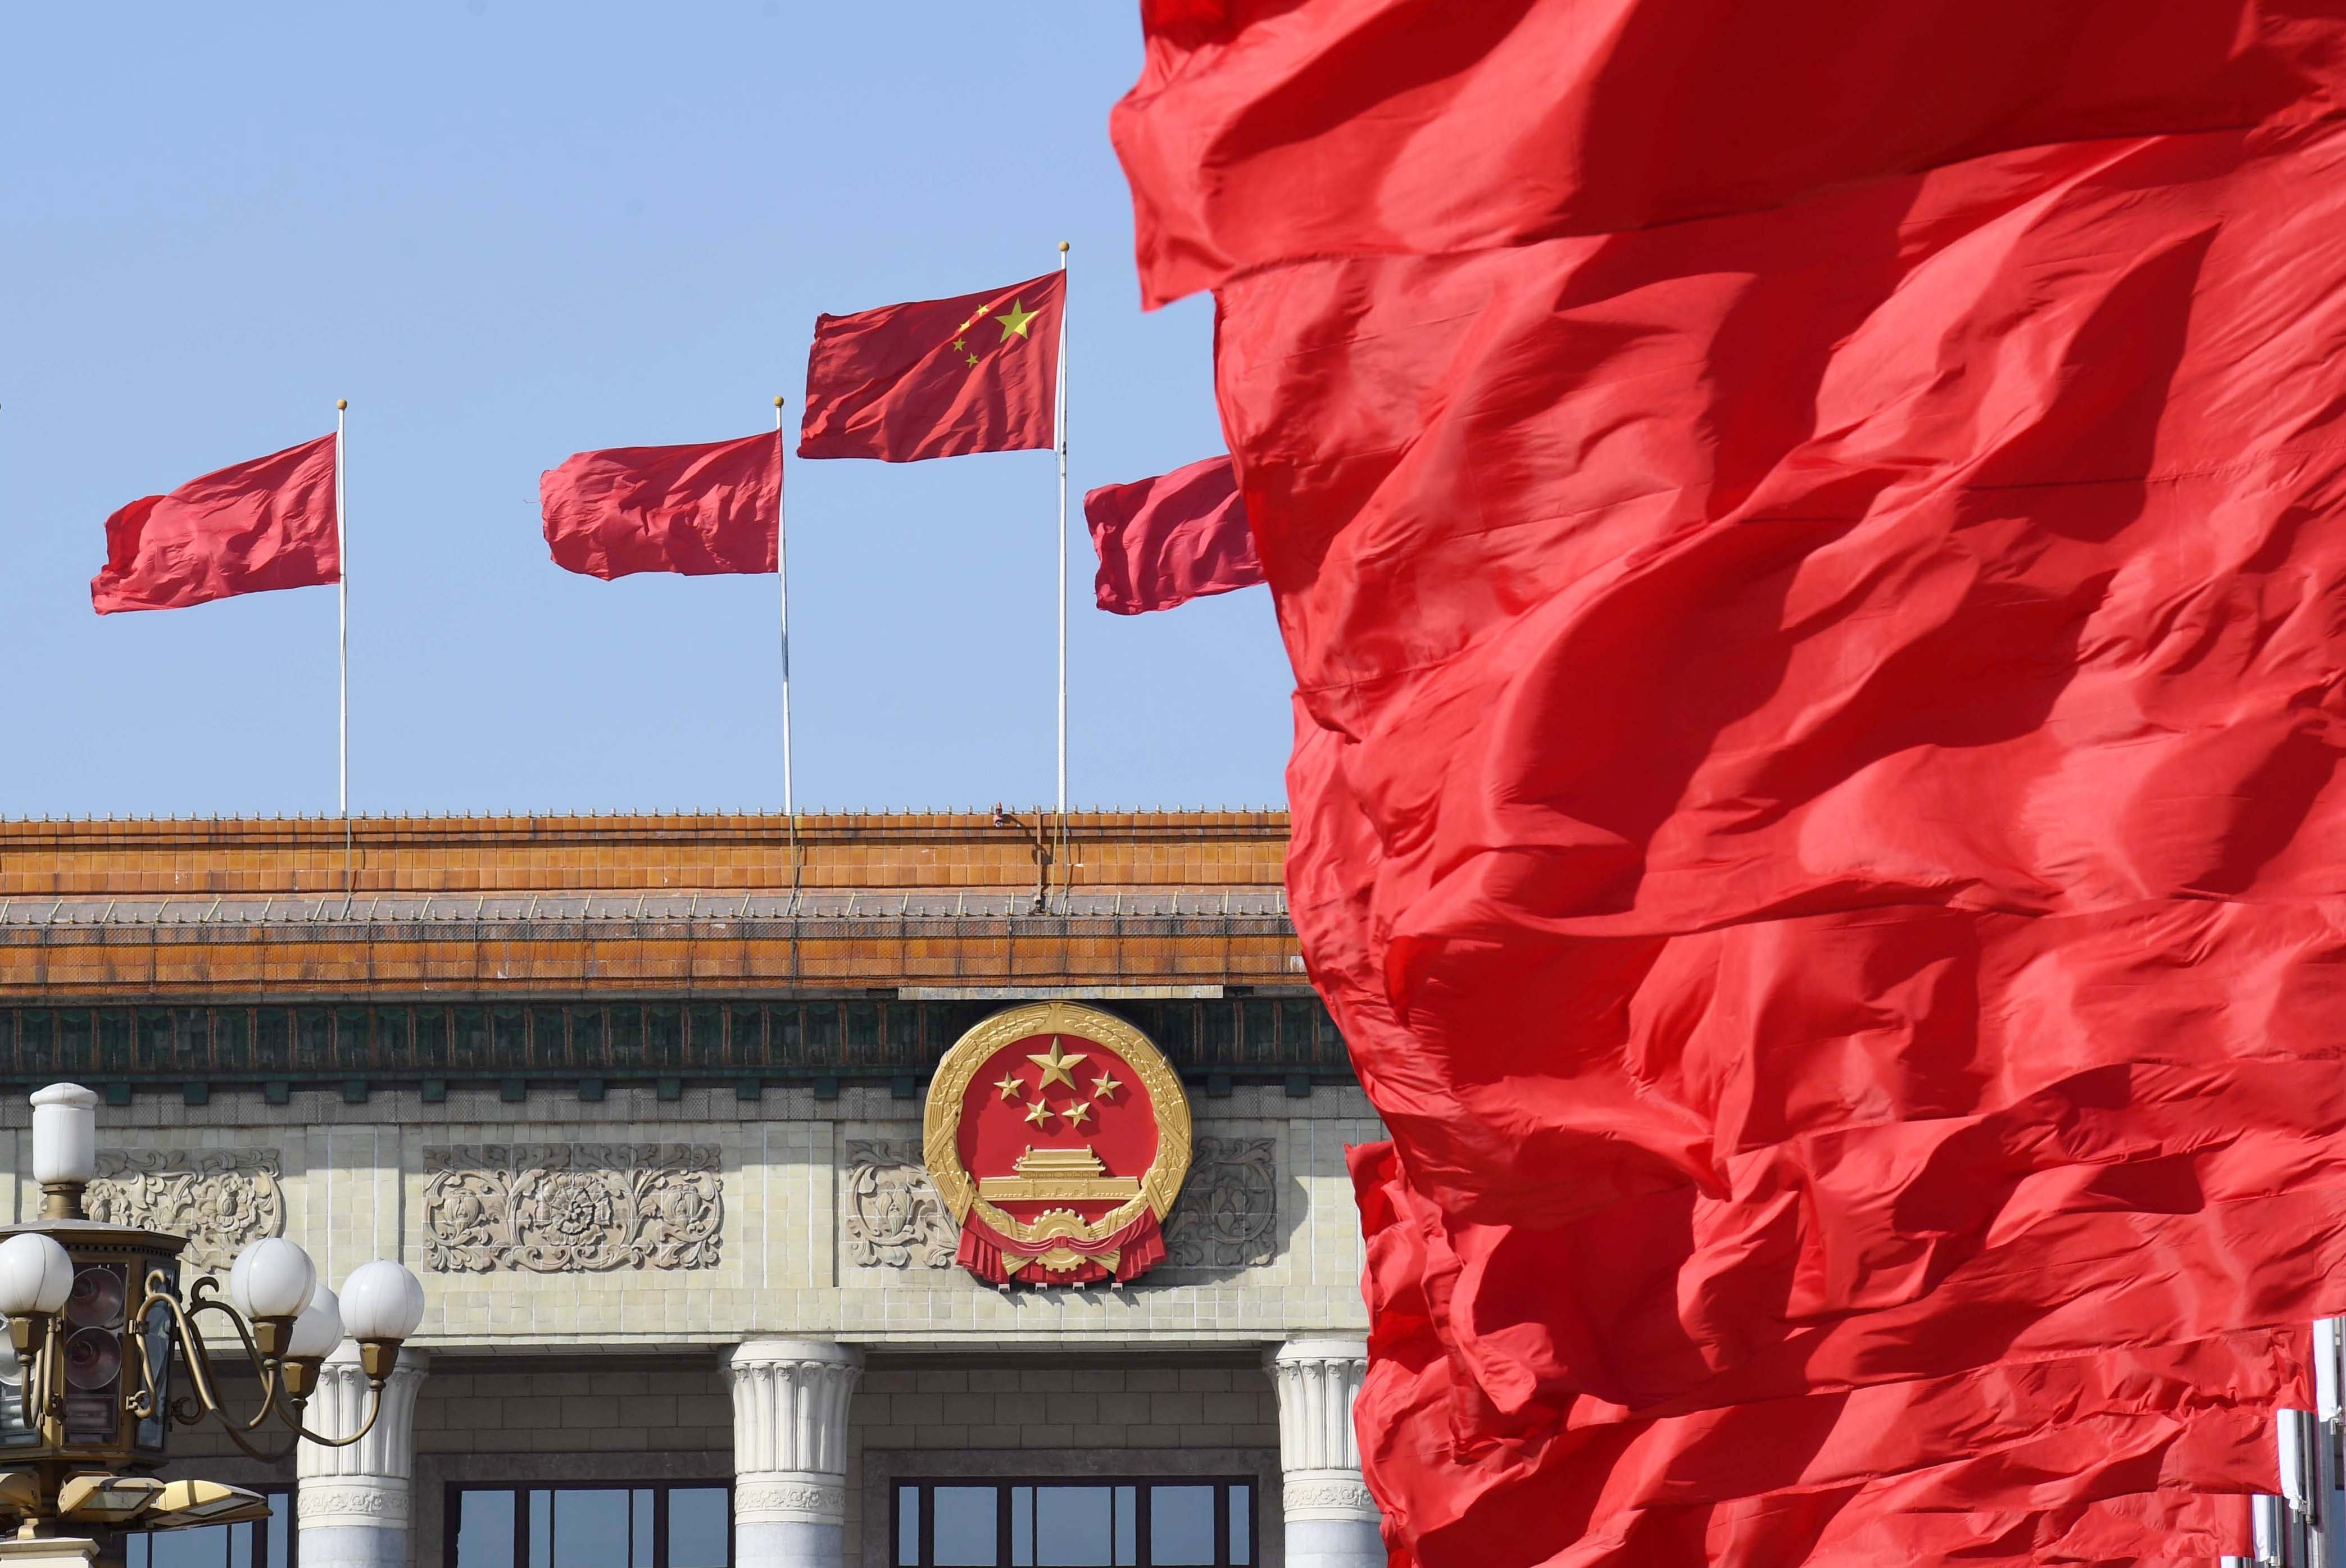 CPC ensures proper exercising of Party members' rights